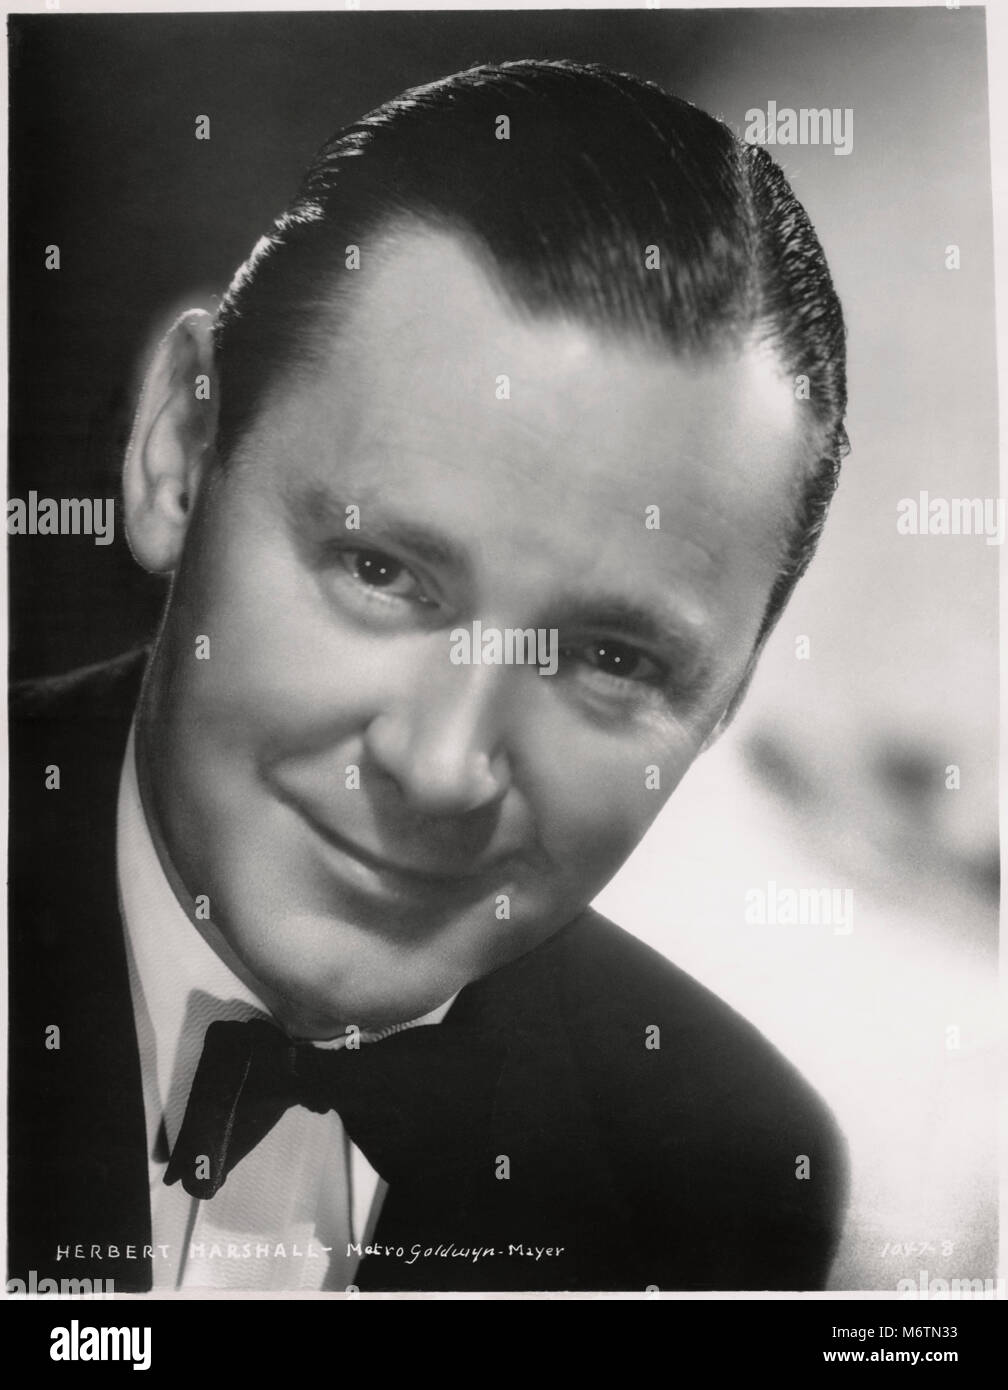 Herbert Marshall, Publicity Portrait for the Film, 'Woman against Woman', MGM, 1938 - Stock Image